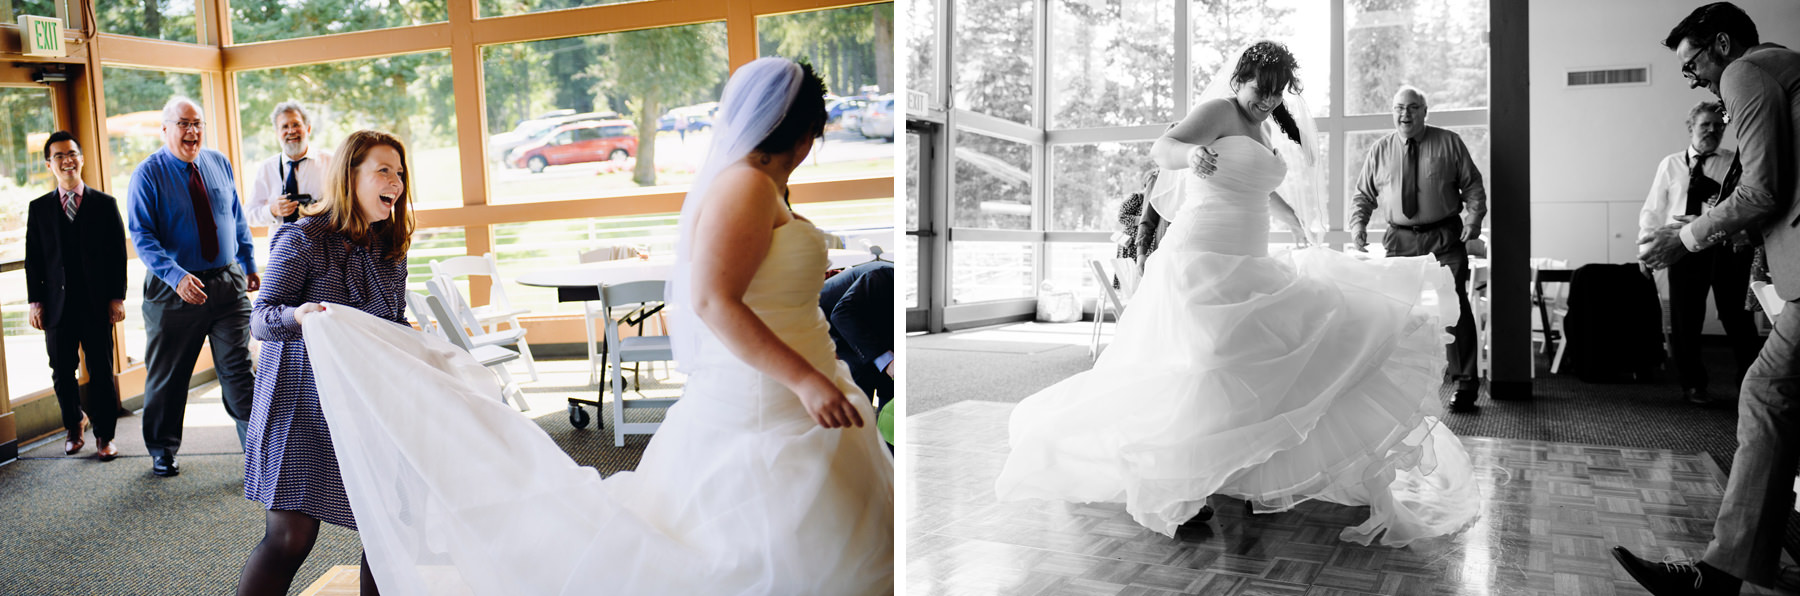 lake-wilderness-lodge-wedding-photos-35